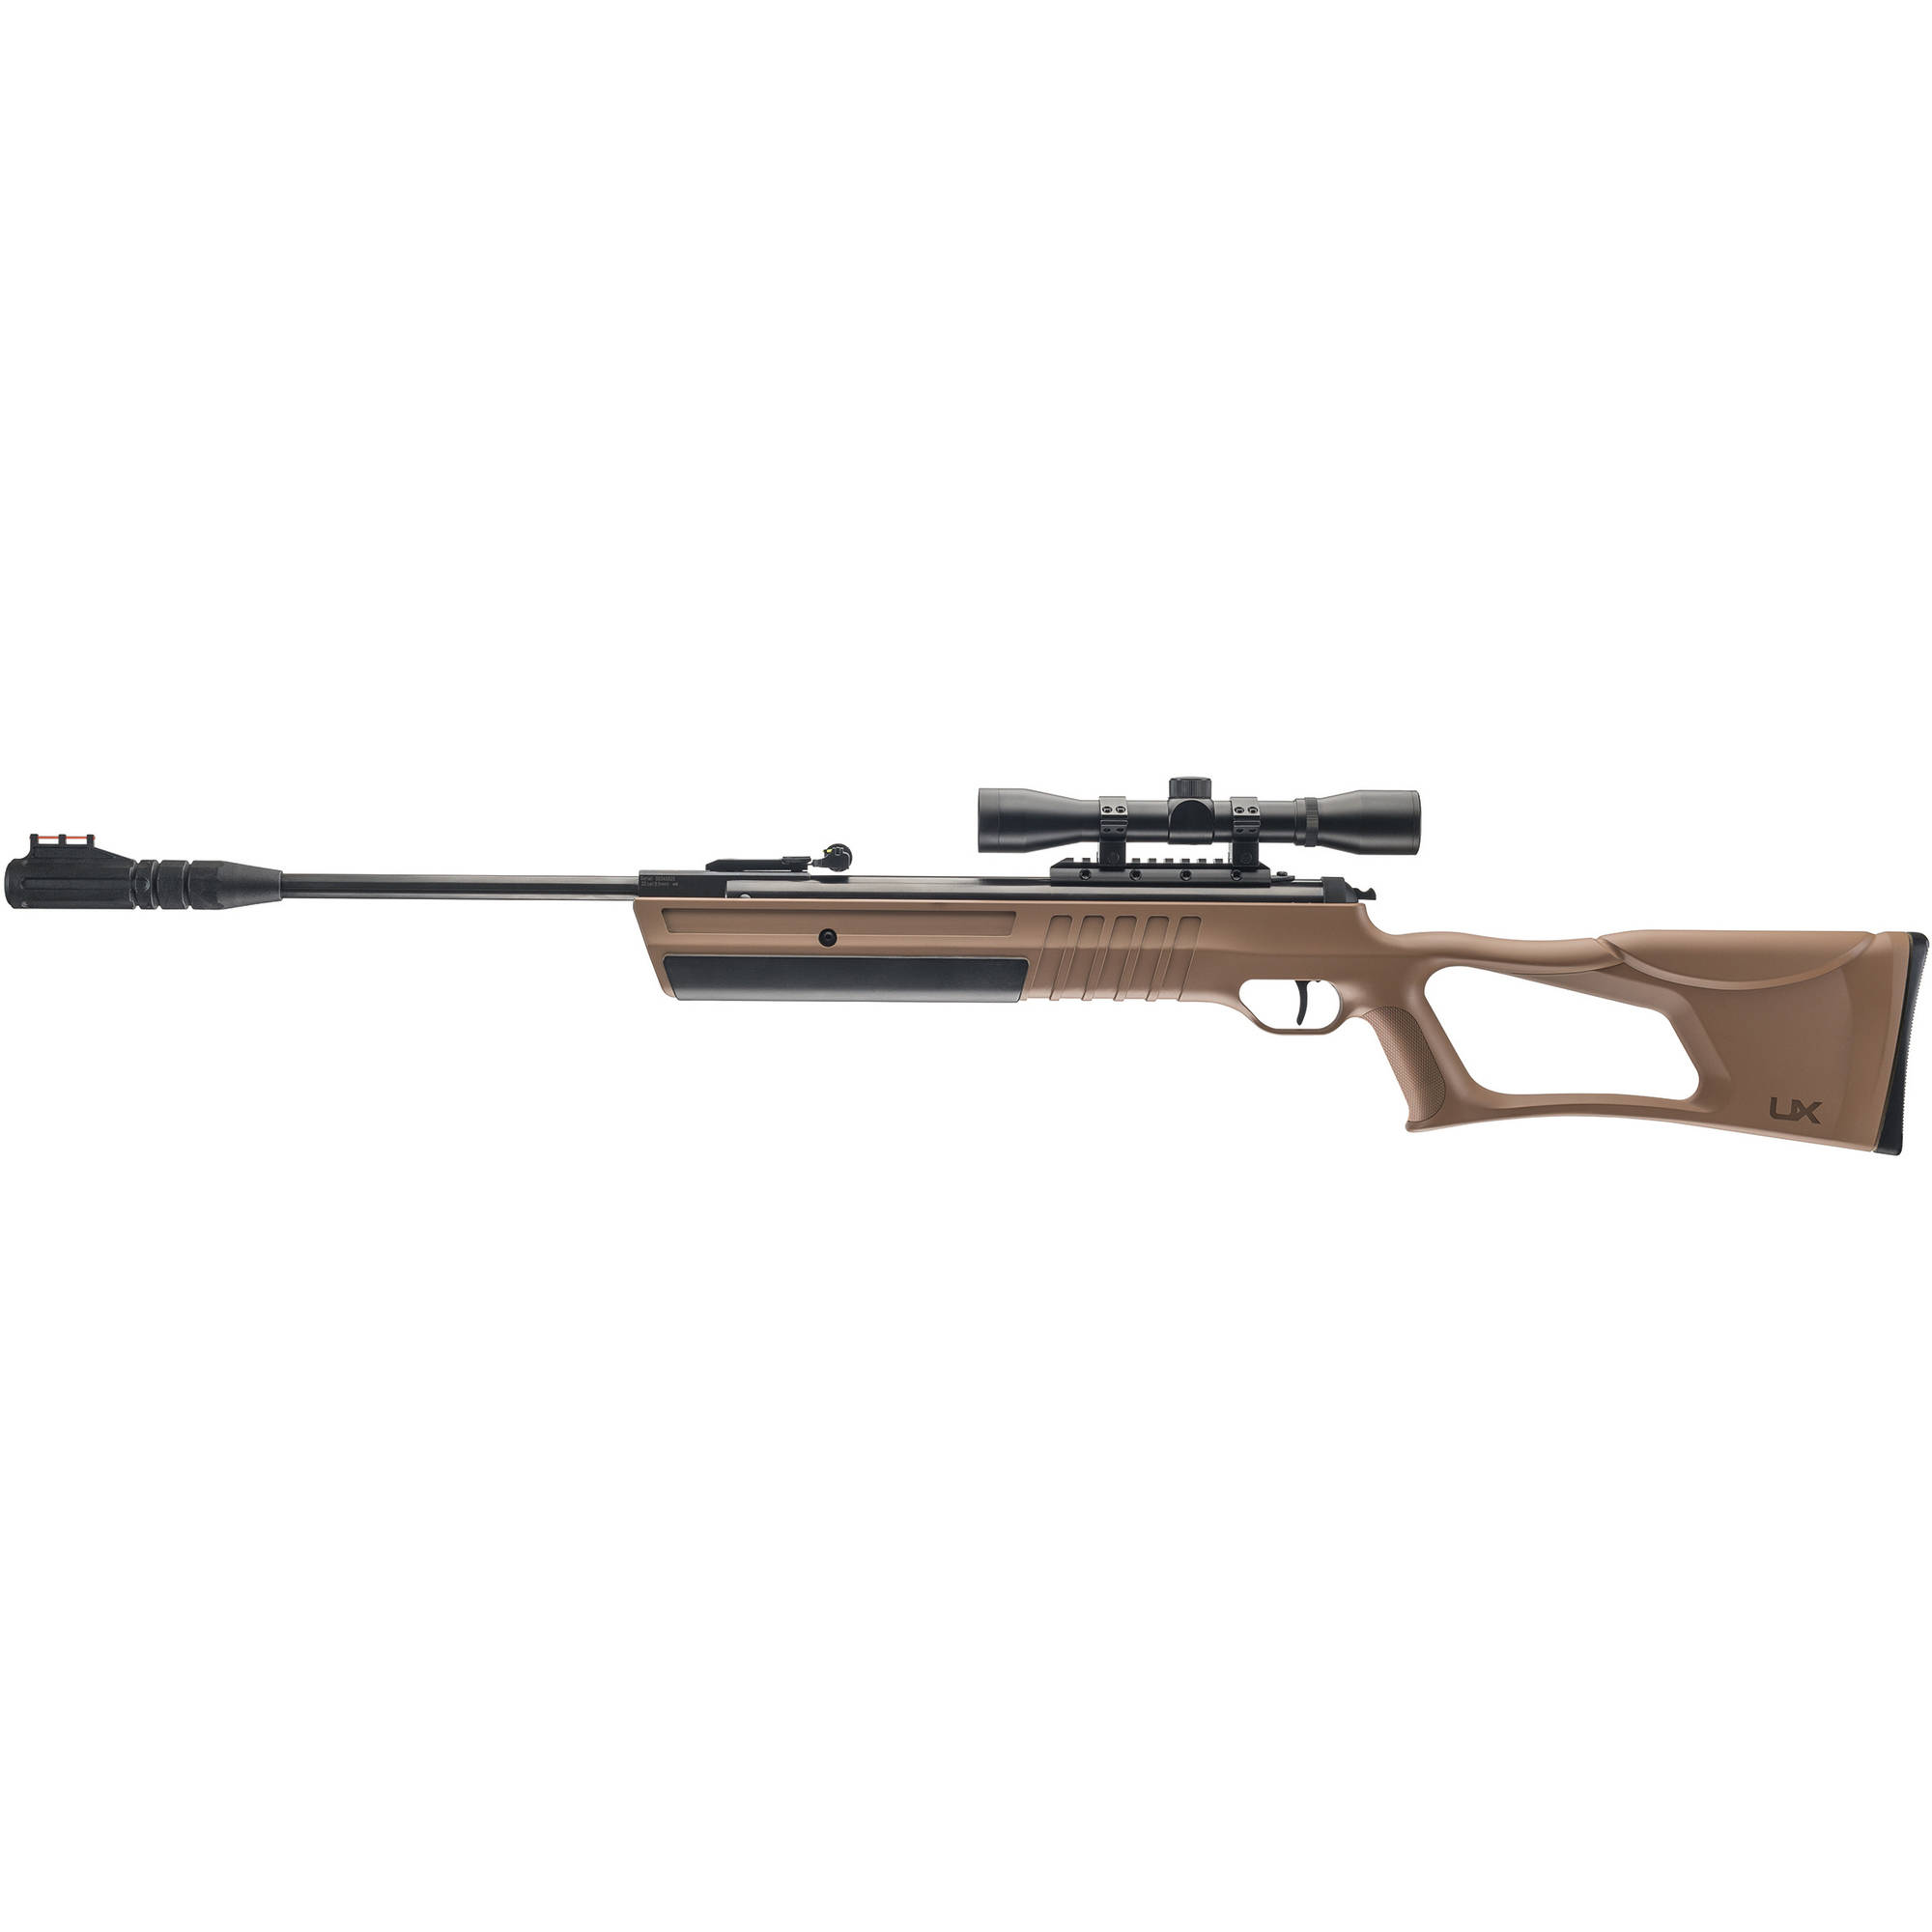 Umarex Torq .22 Air Rifle by Umarex